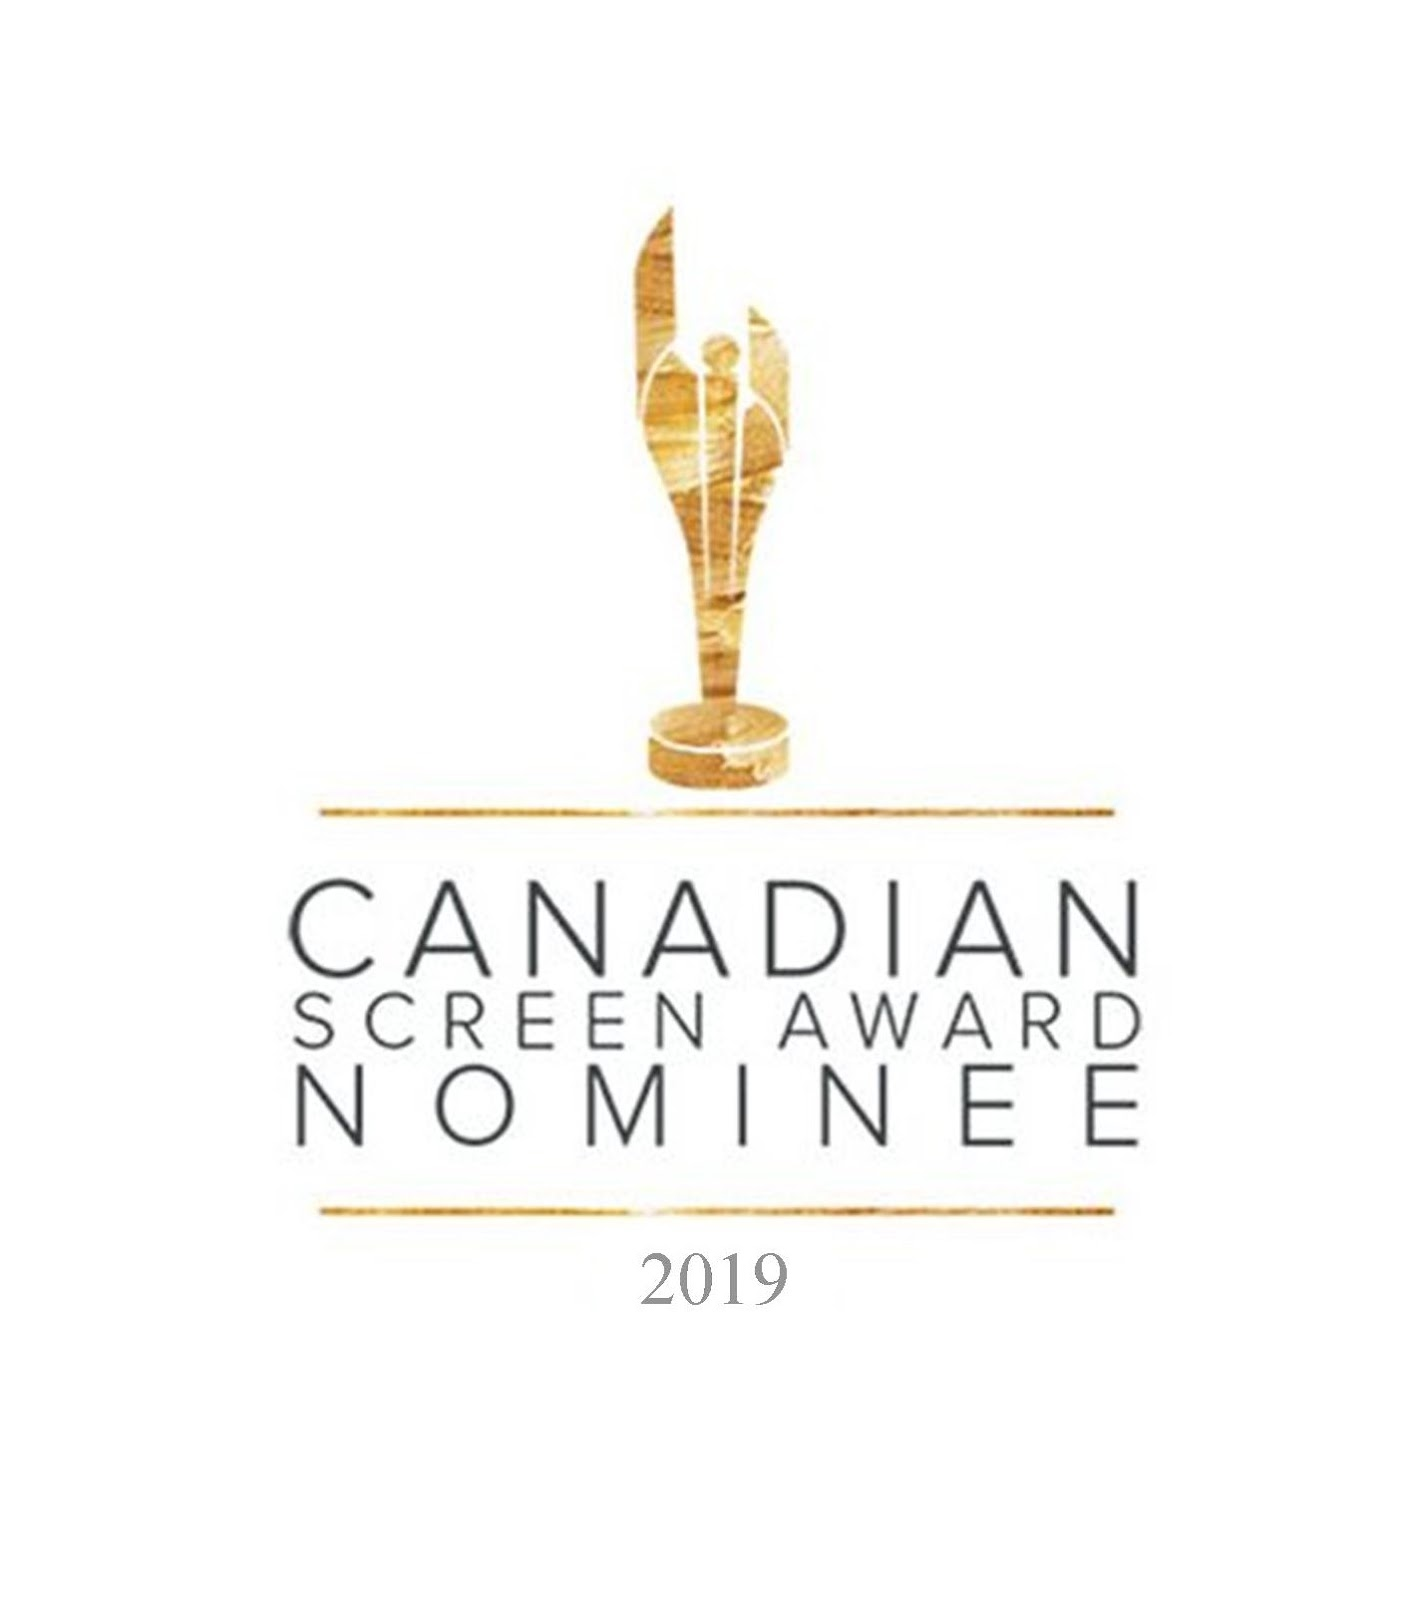 Andrew Cividino was Nominated for 'Best Direction, Comedy' in the 2019 Canadian Screen Awards.